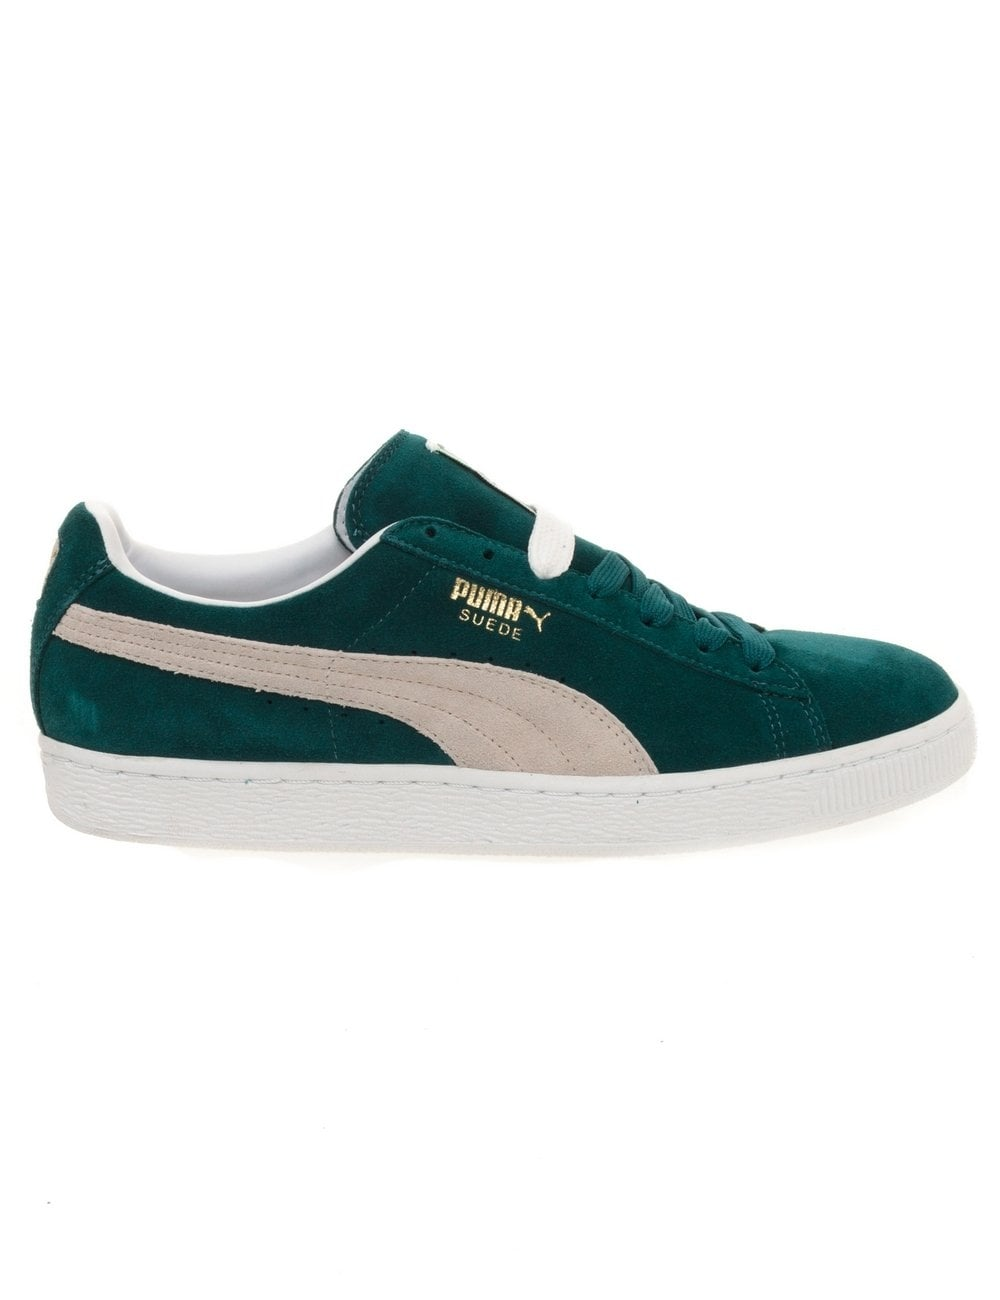 Suede Classic - Green/White